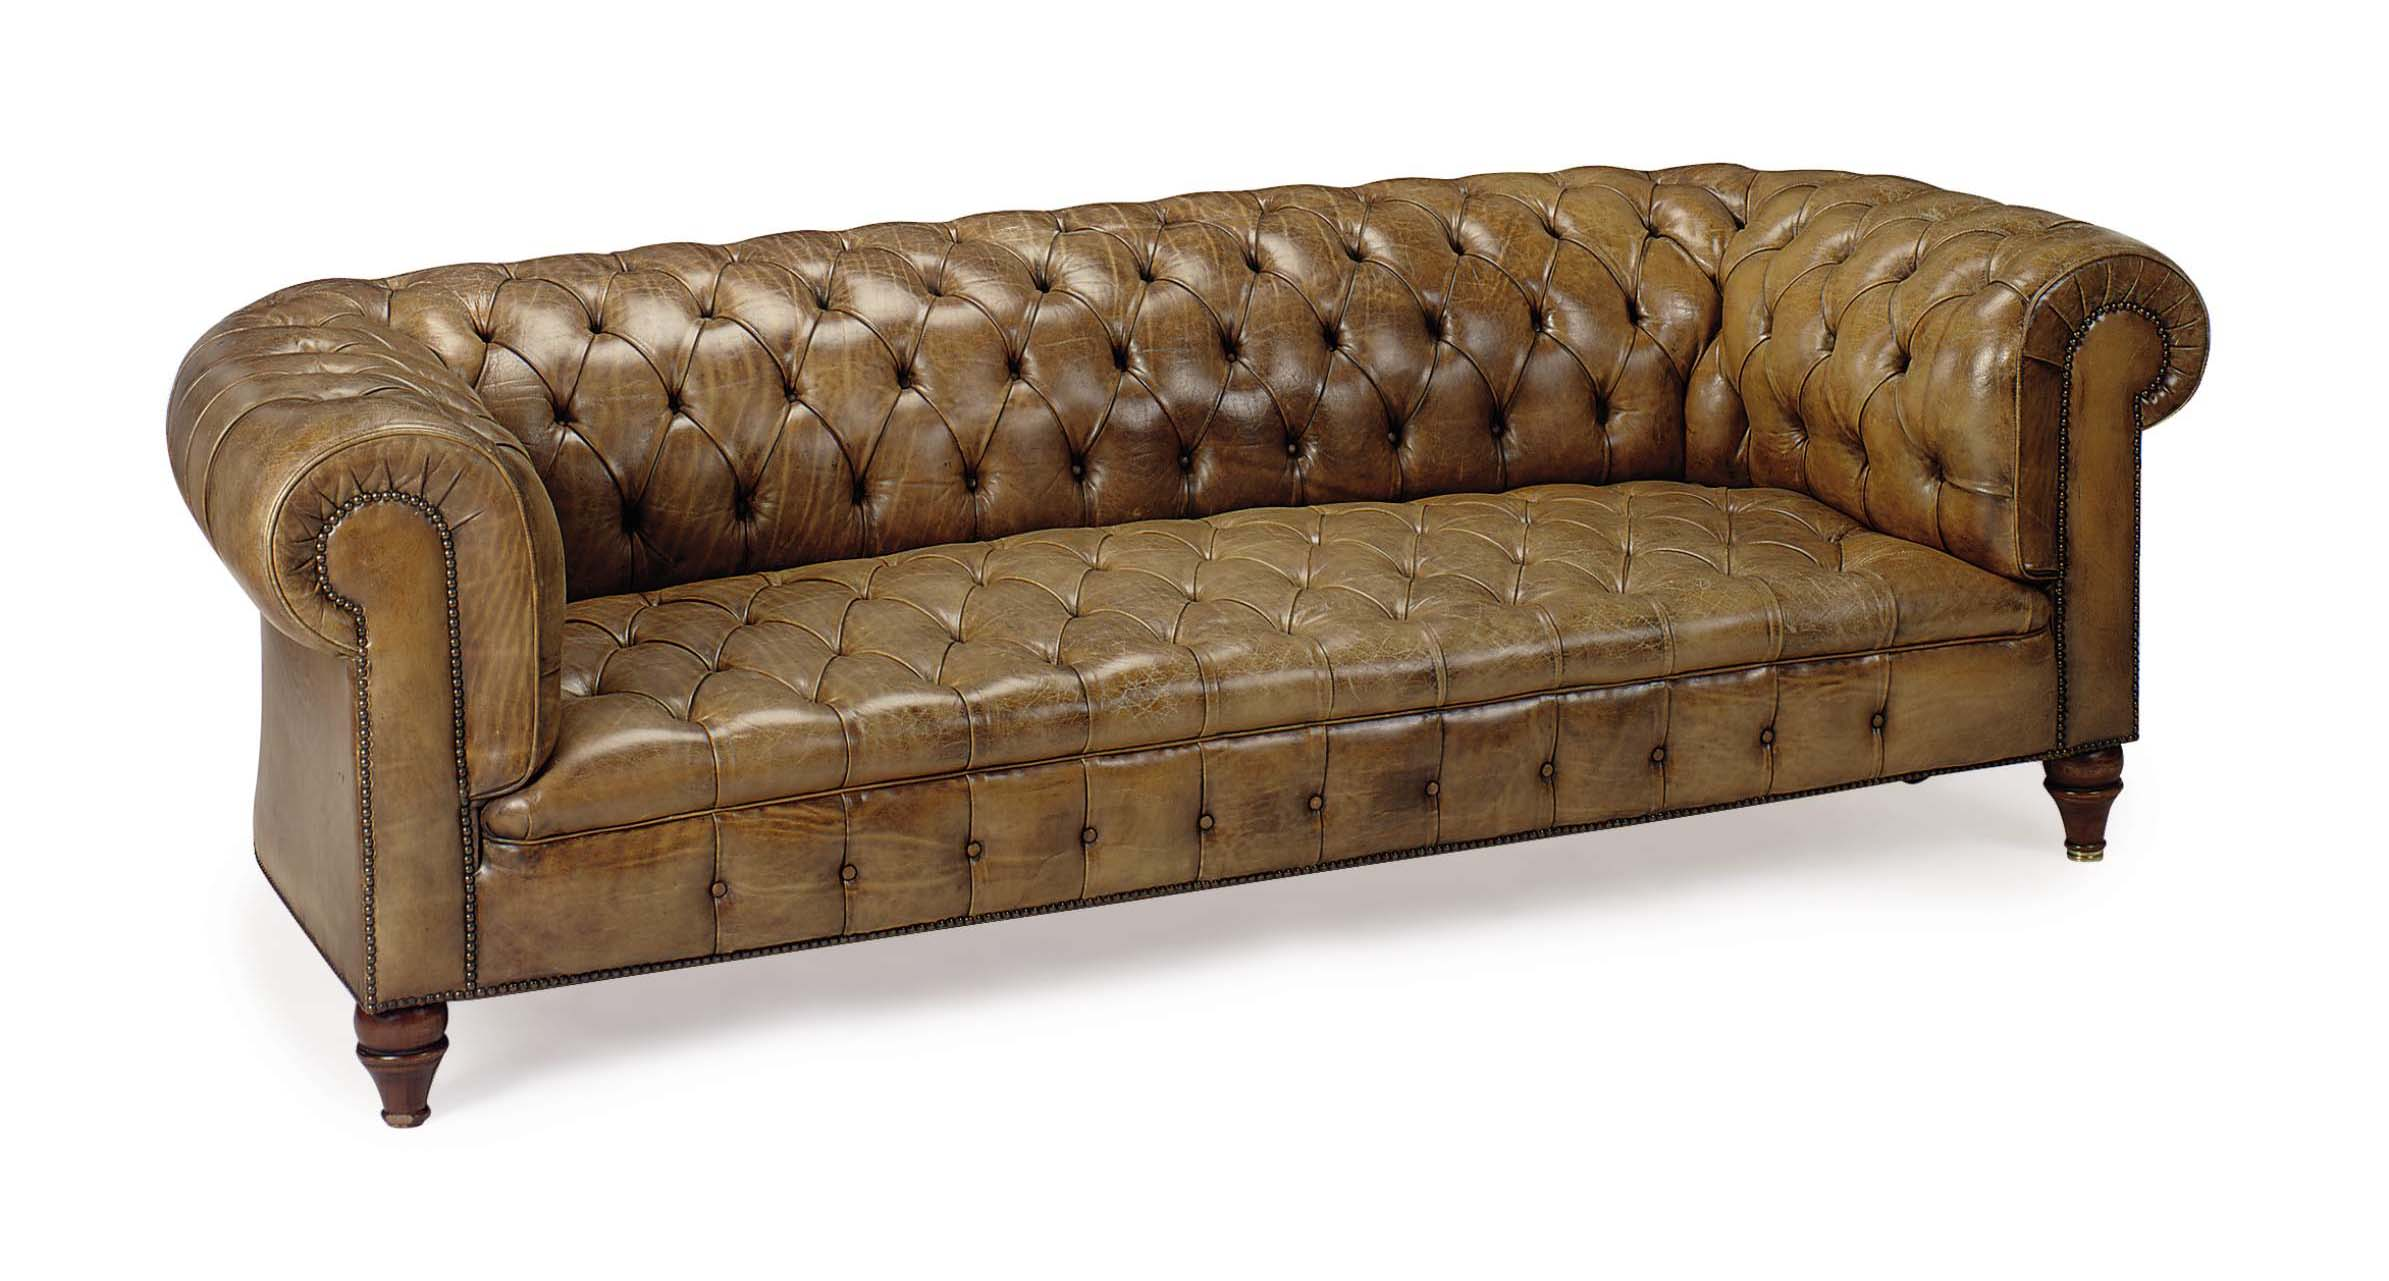 A BUTTON-TUFTED LEATHER-UPHOLSTERED CHESTERFIELD SOFA,